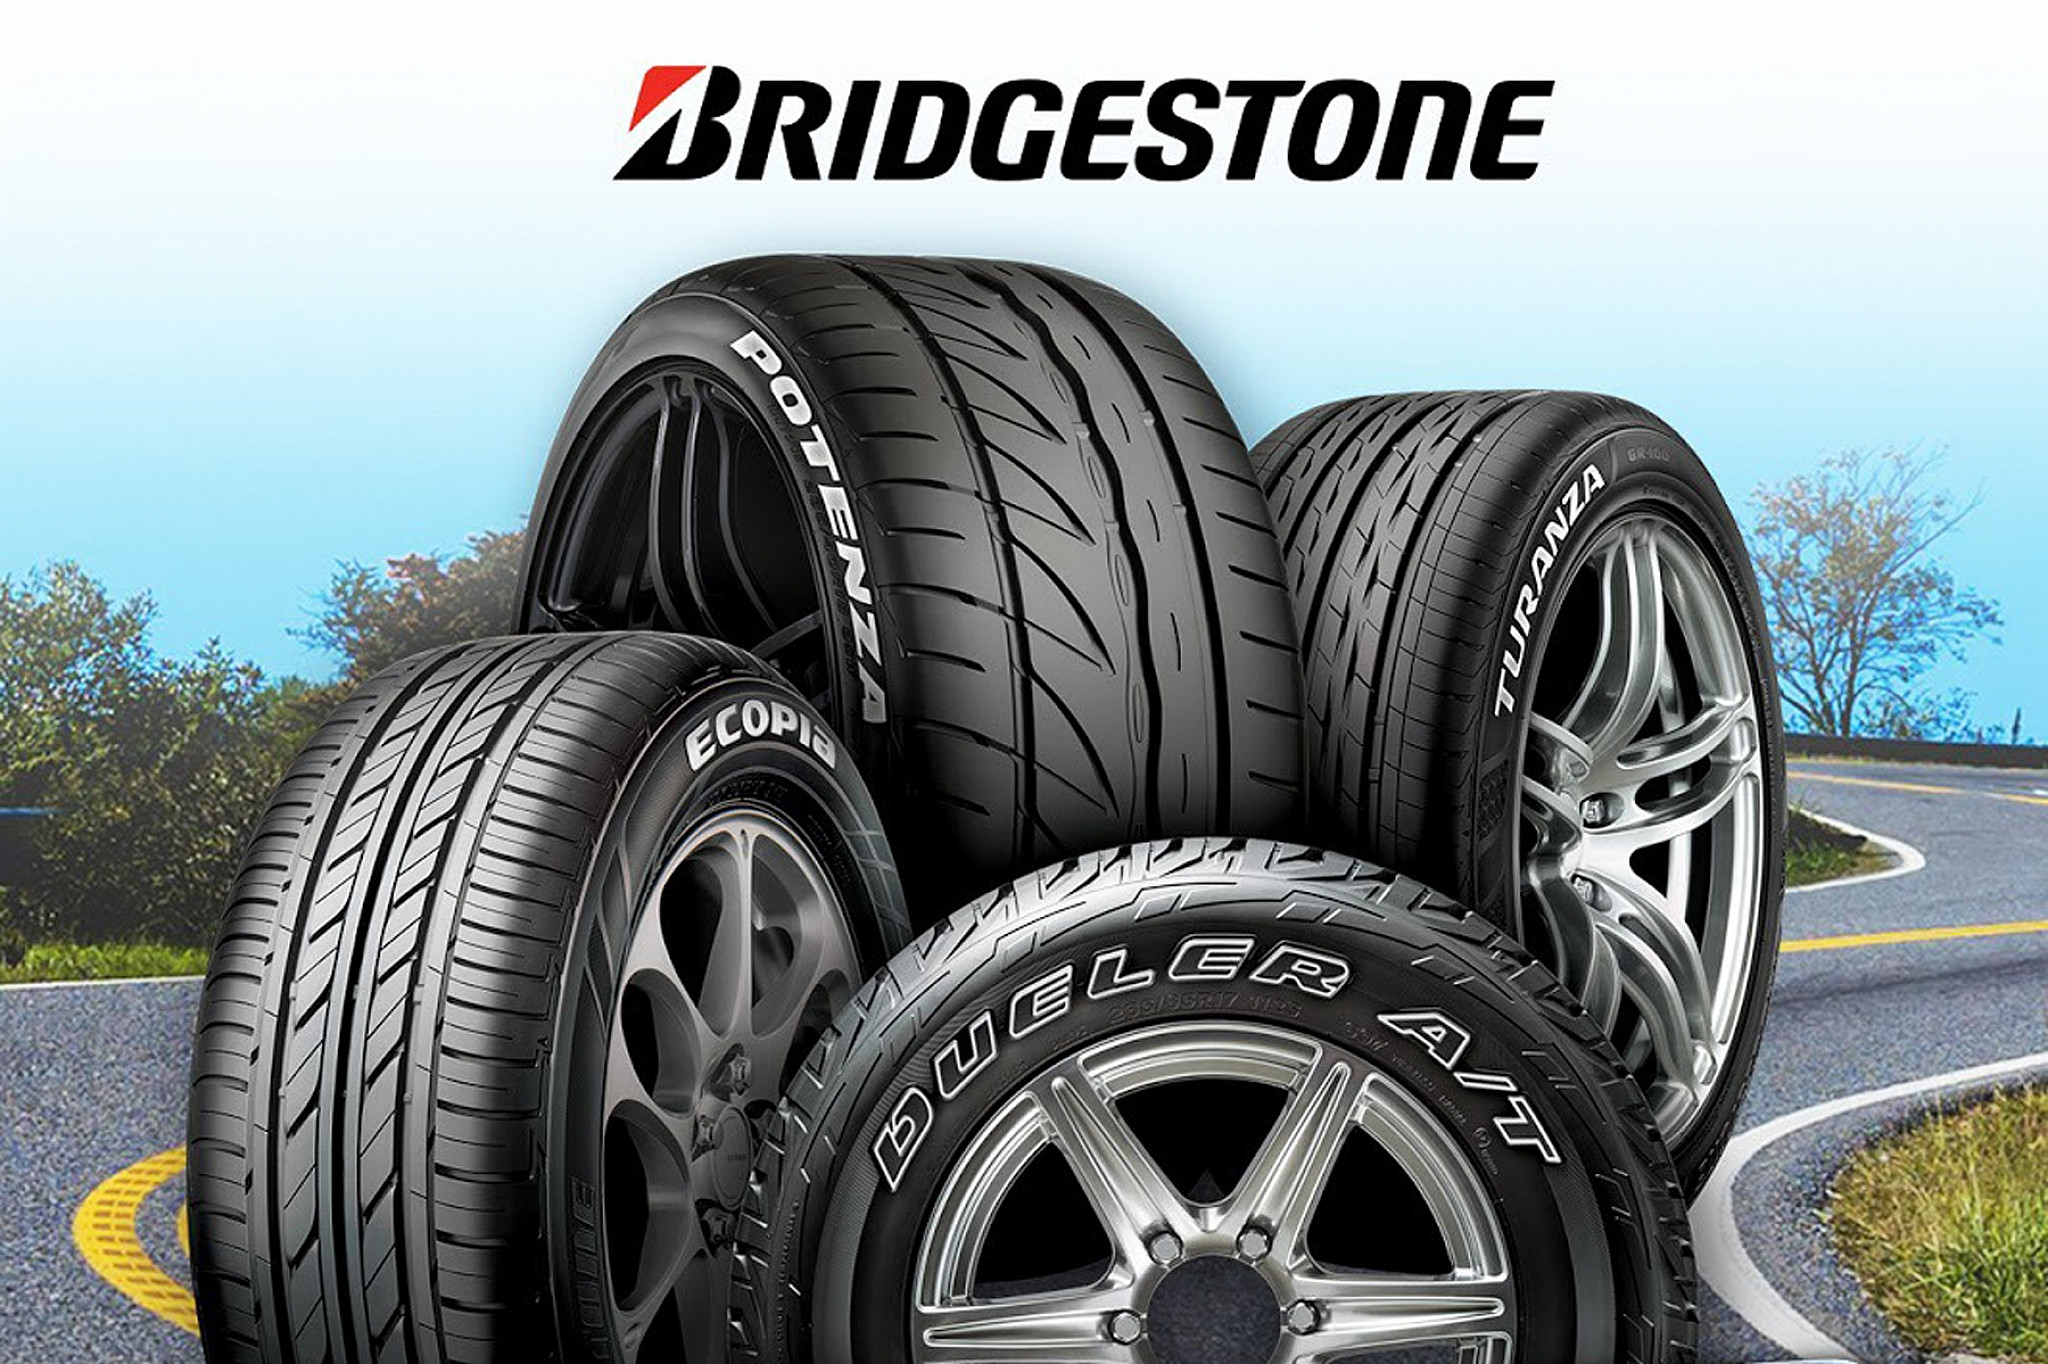 Bridgestone Continues to be the Top Tire Company in the World